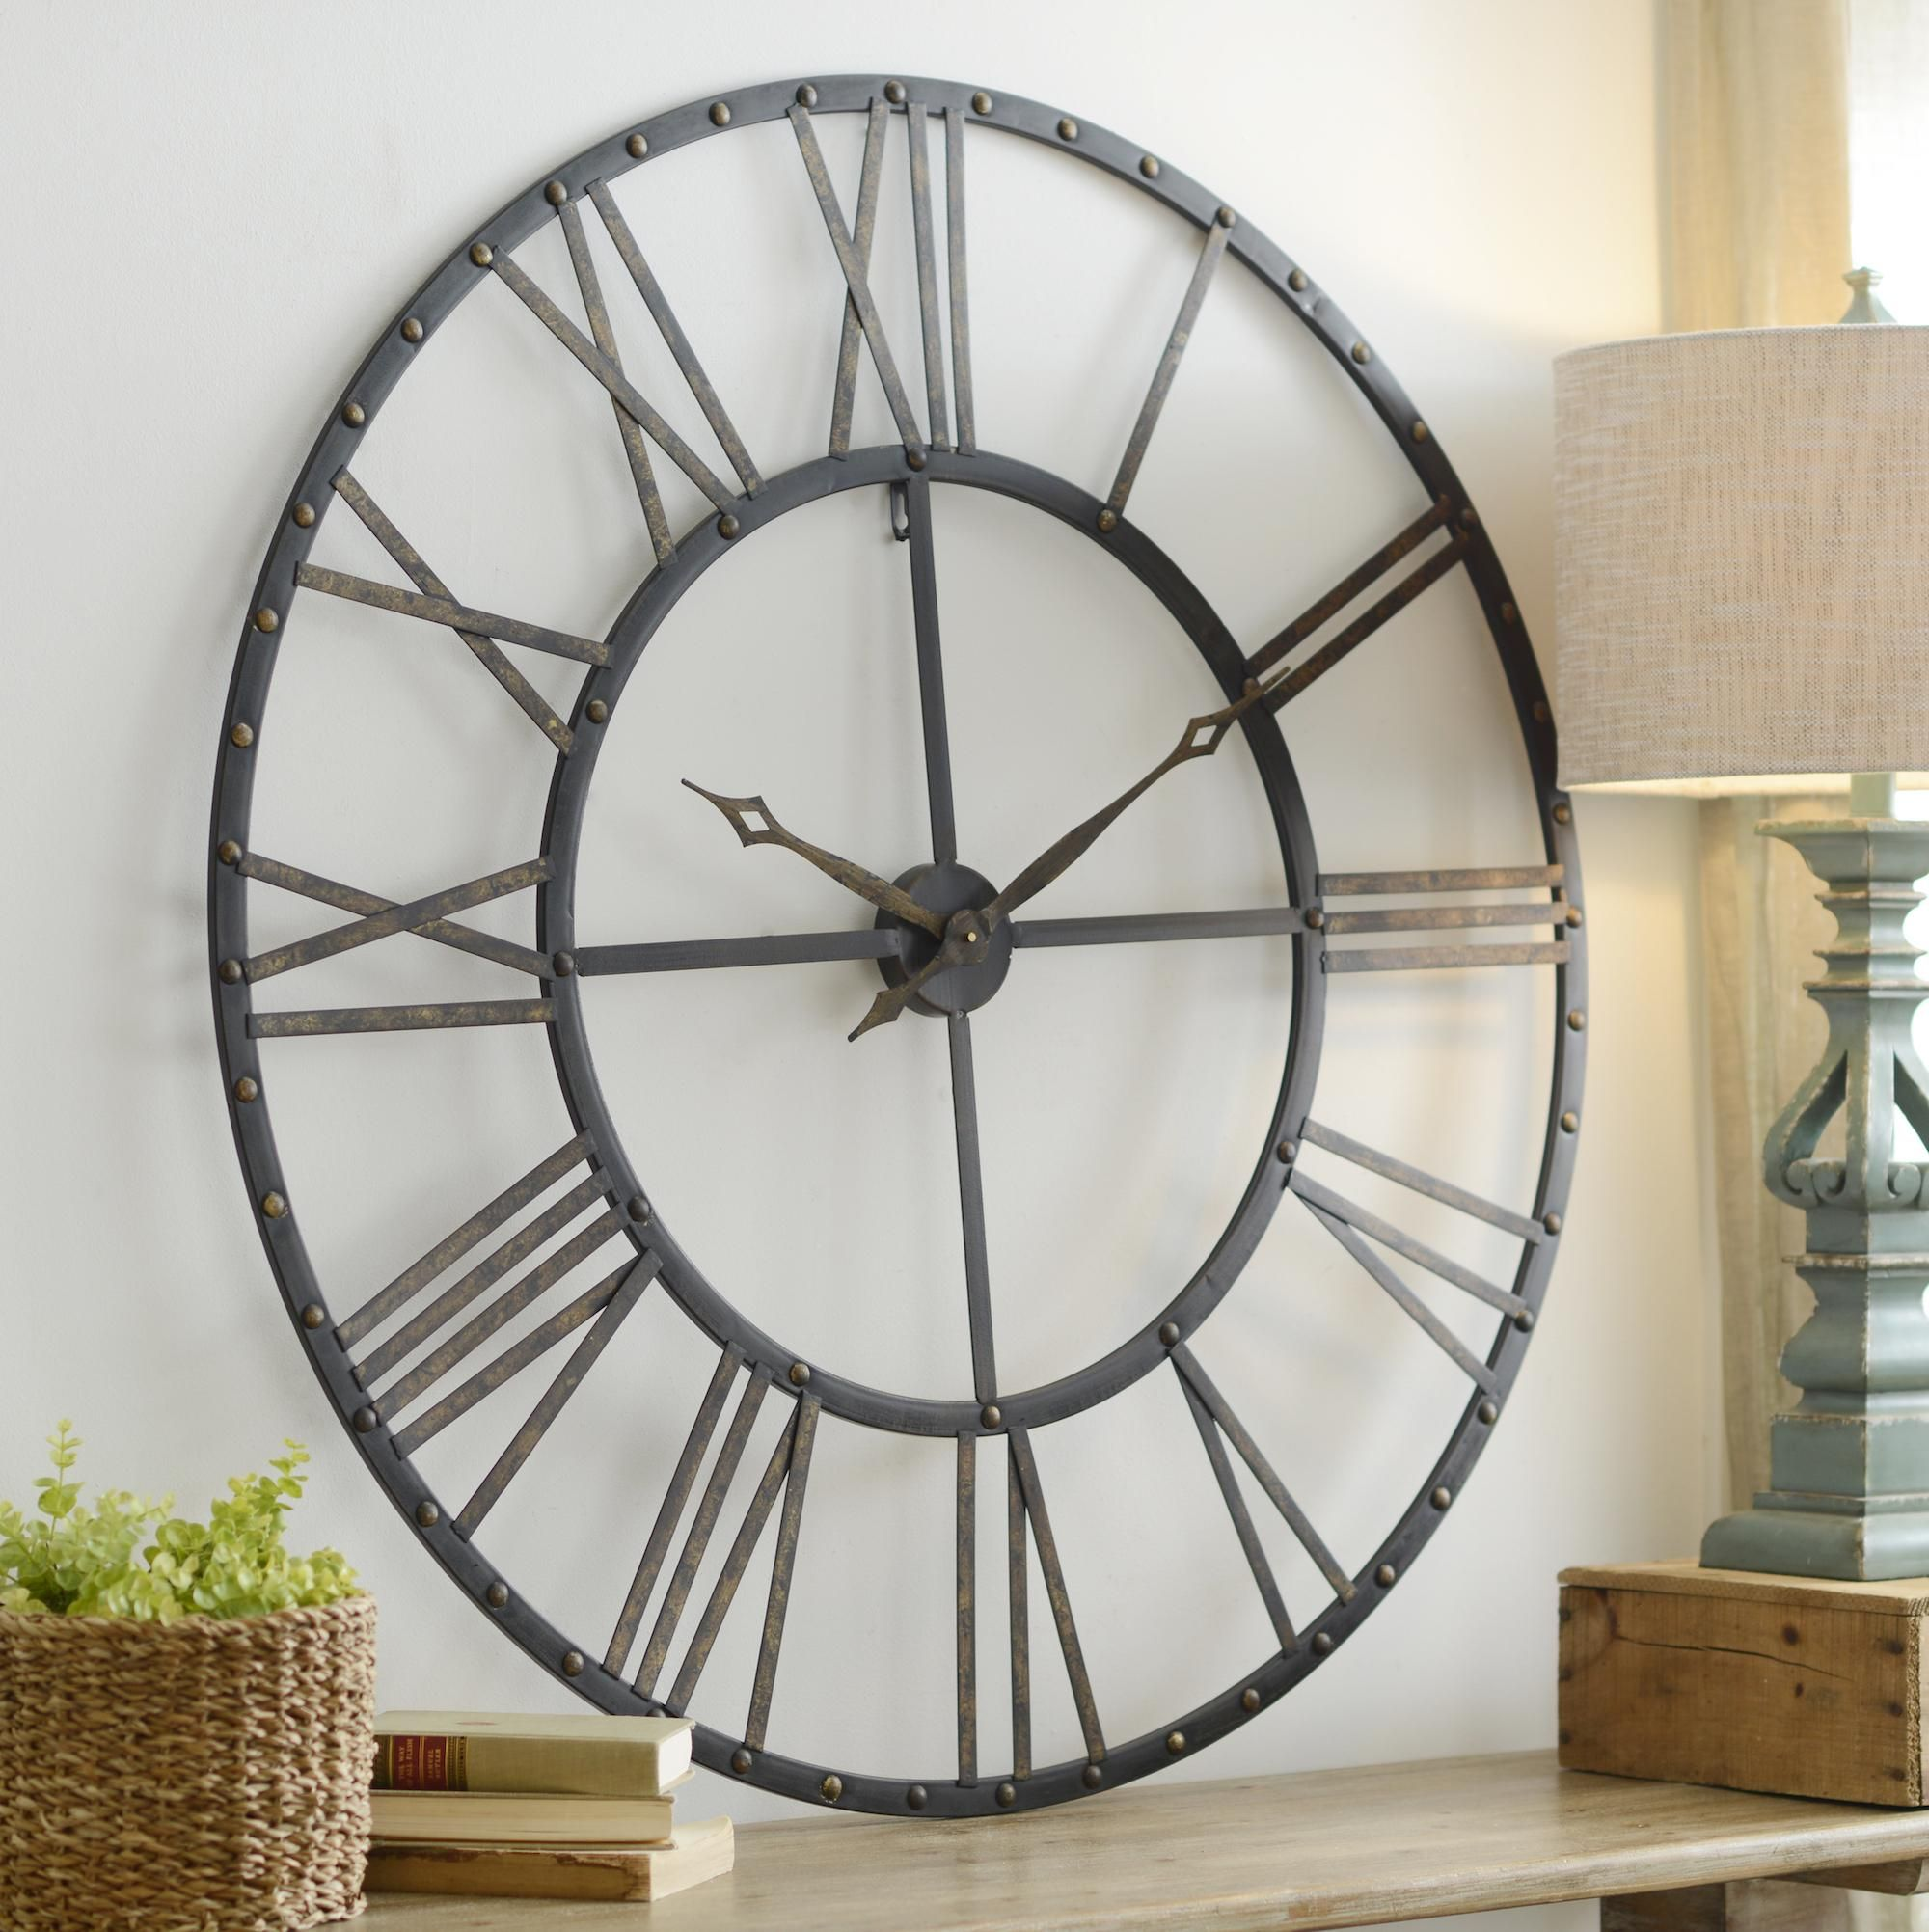 Big Clocks For Wall Addison Open Face Clock Blank Walls Open Face And Clocks